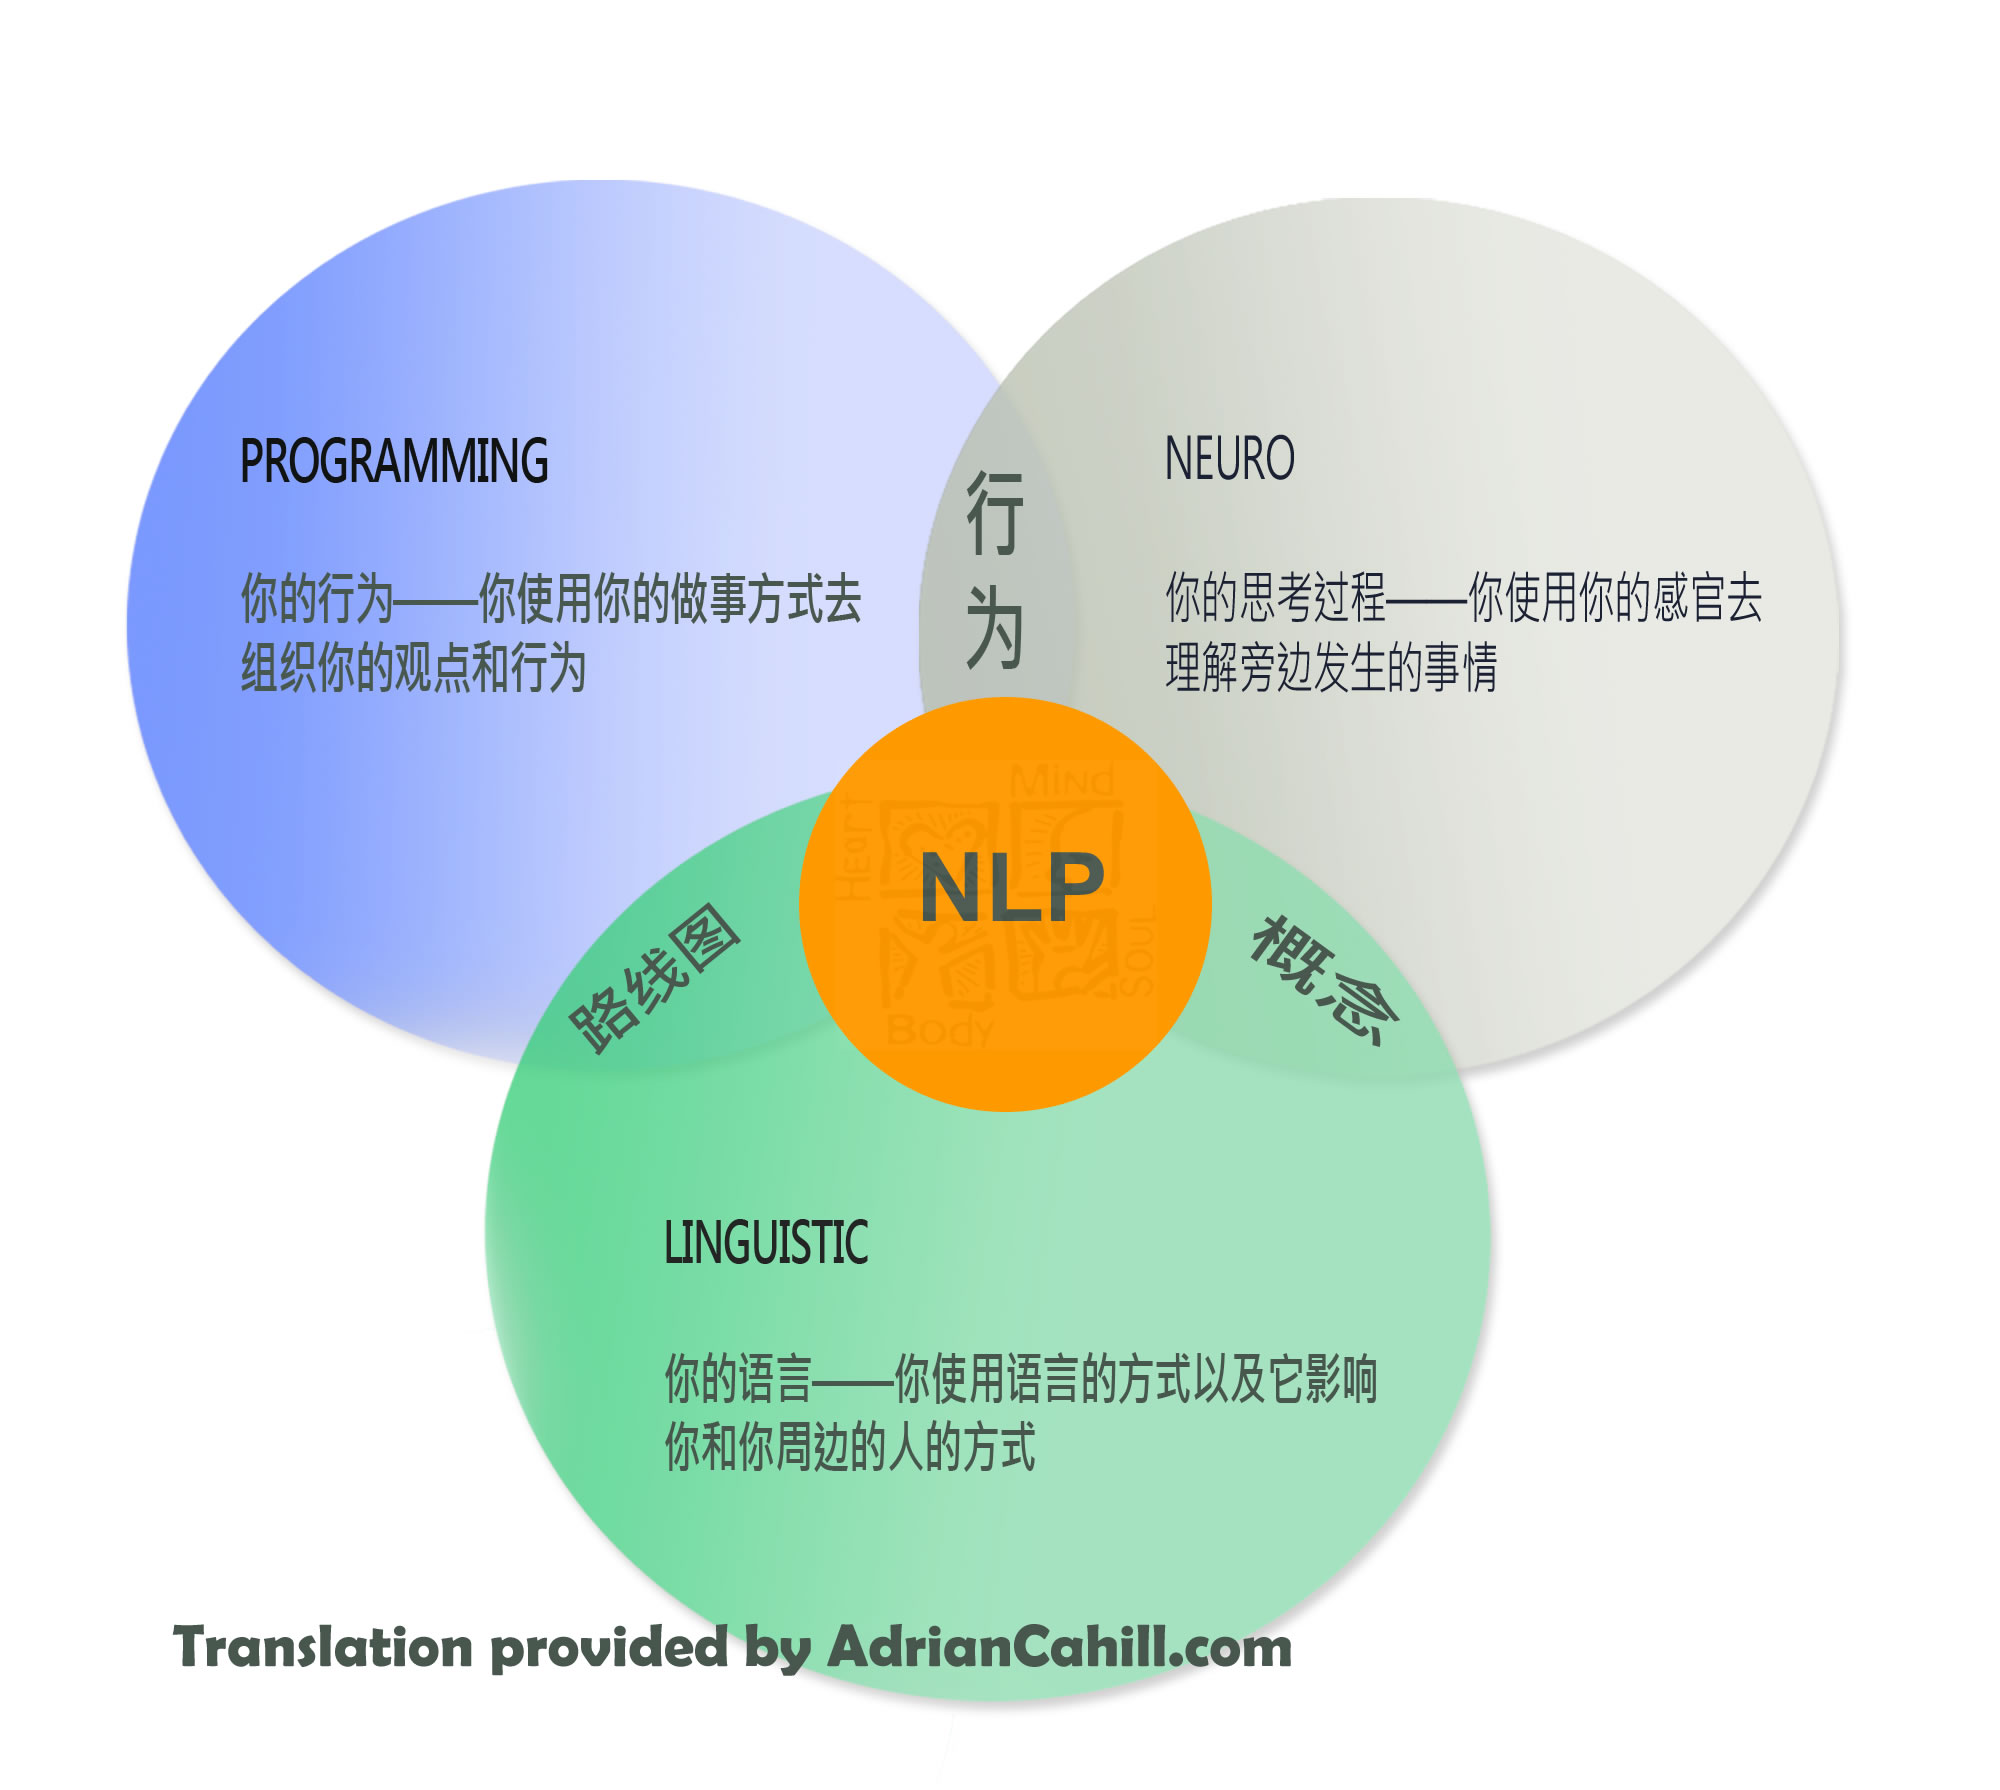 NLP in Chinese